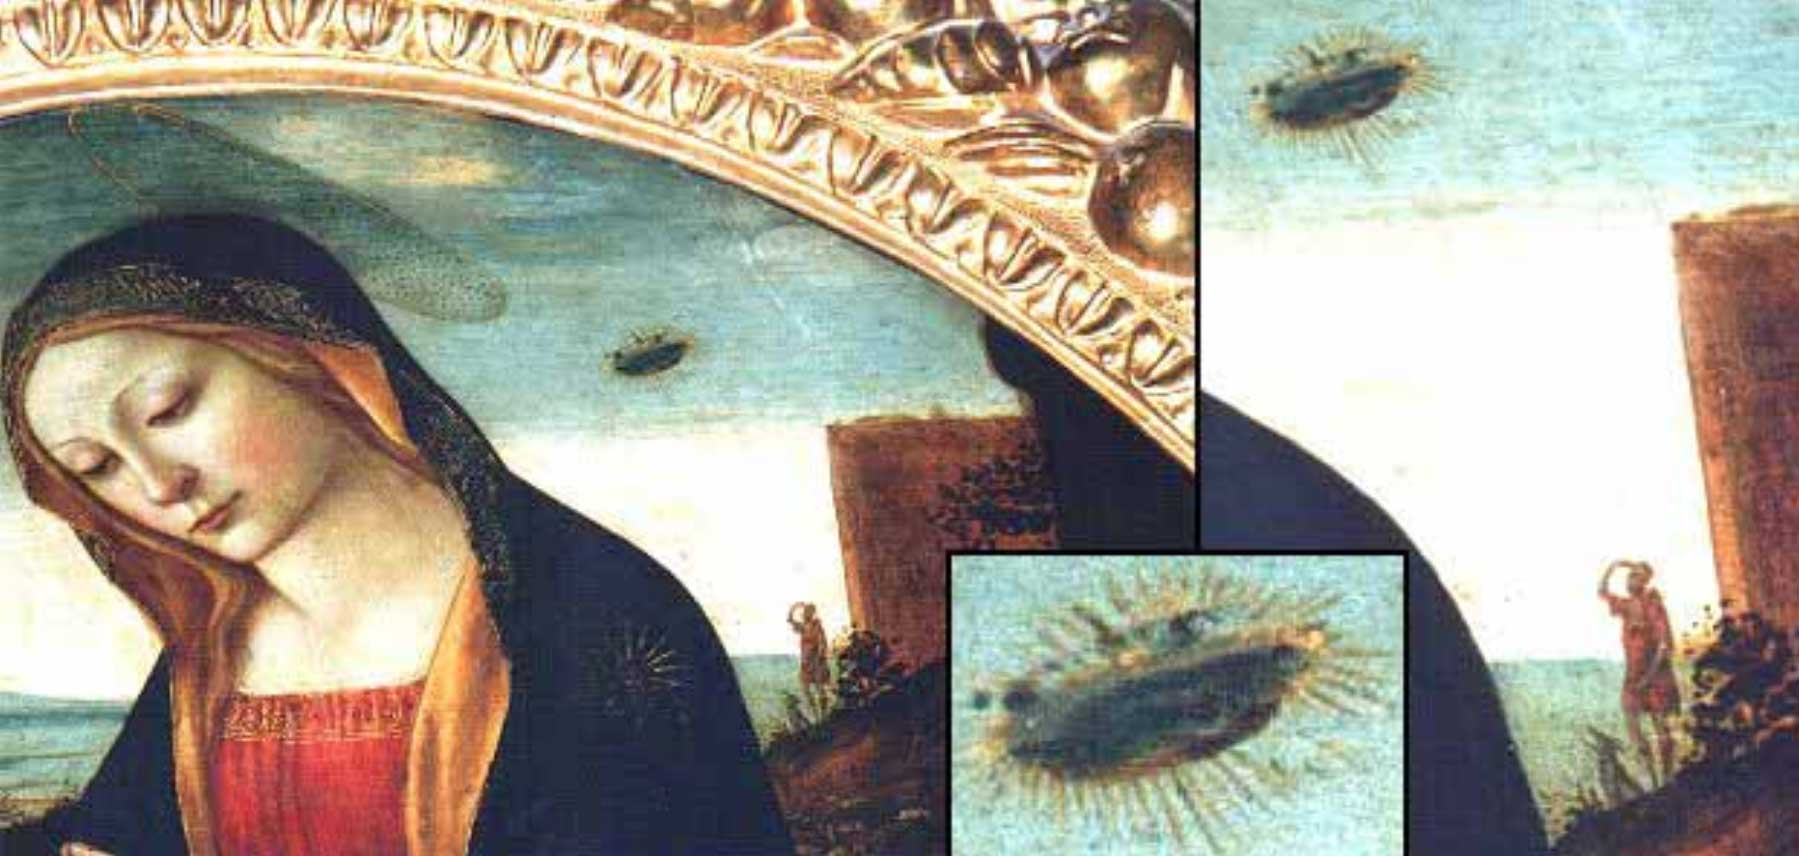 15 ufo pictures that prove aliens have been around for ages